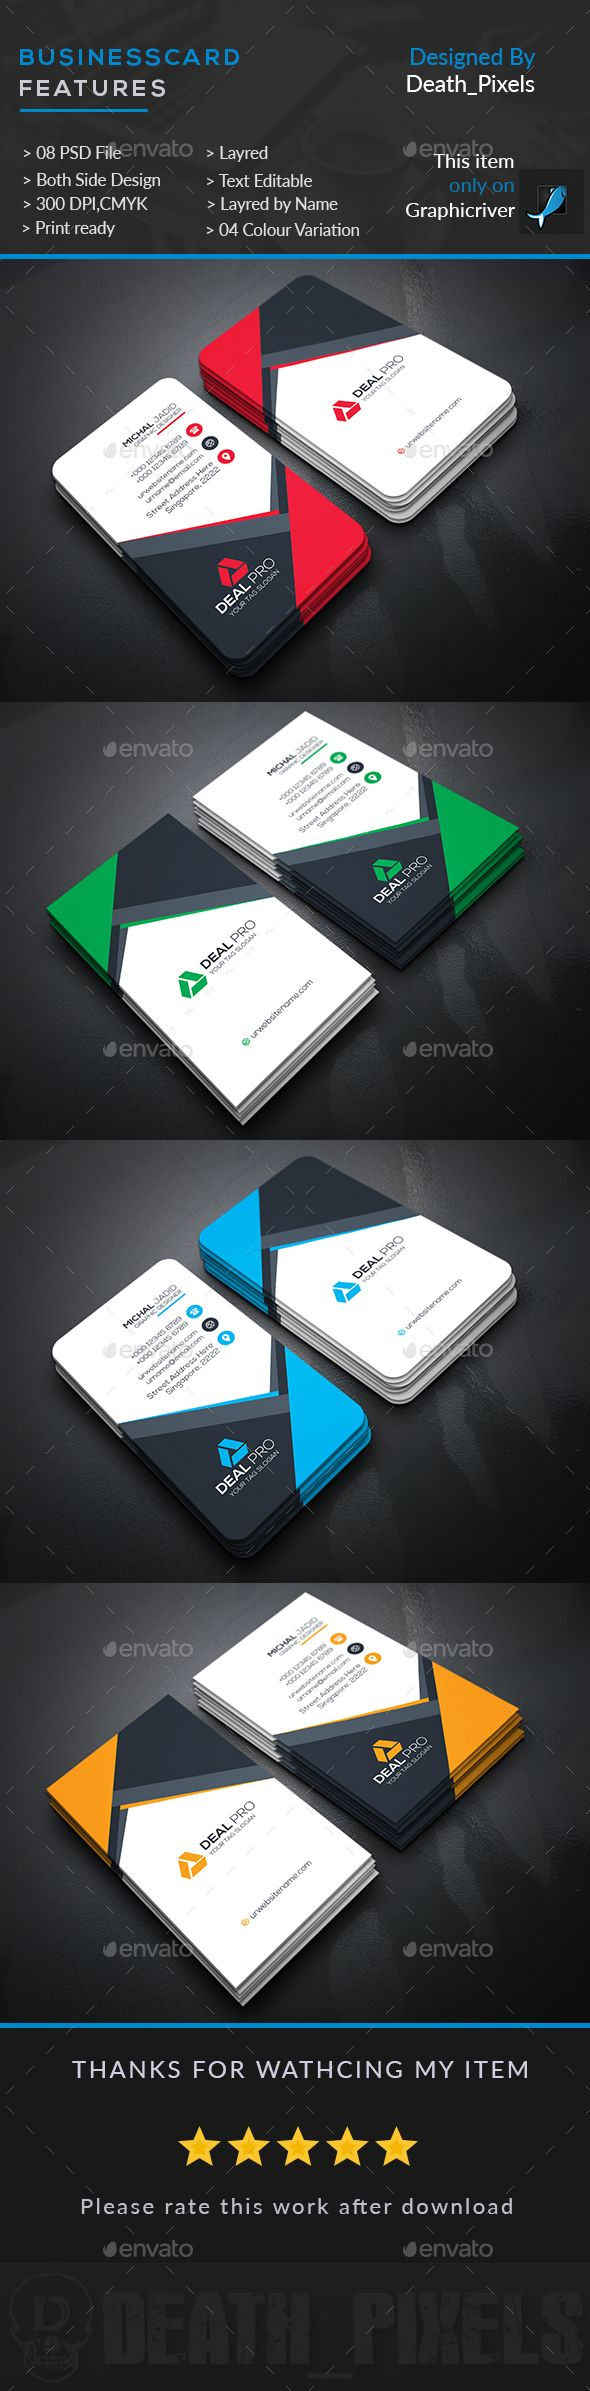 Best Business Card Templates Images On Pinterest Business - Buy business card template